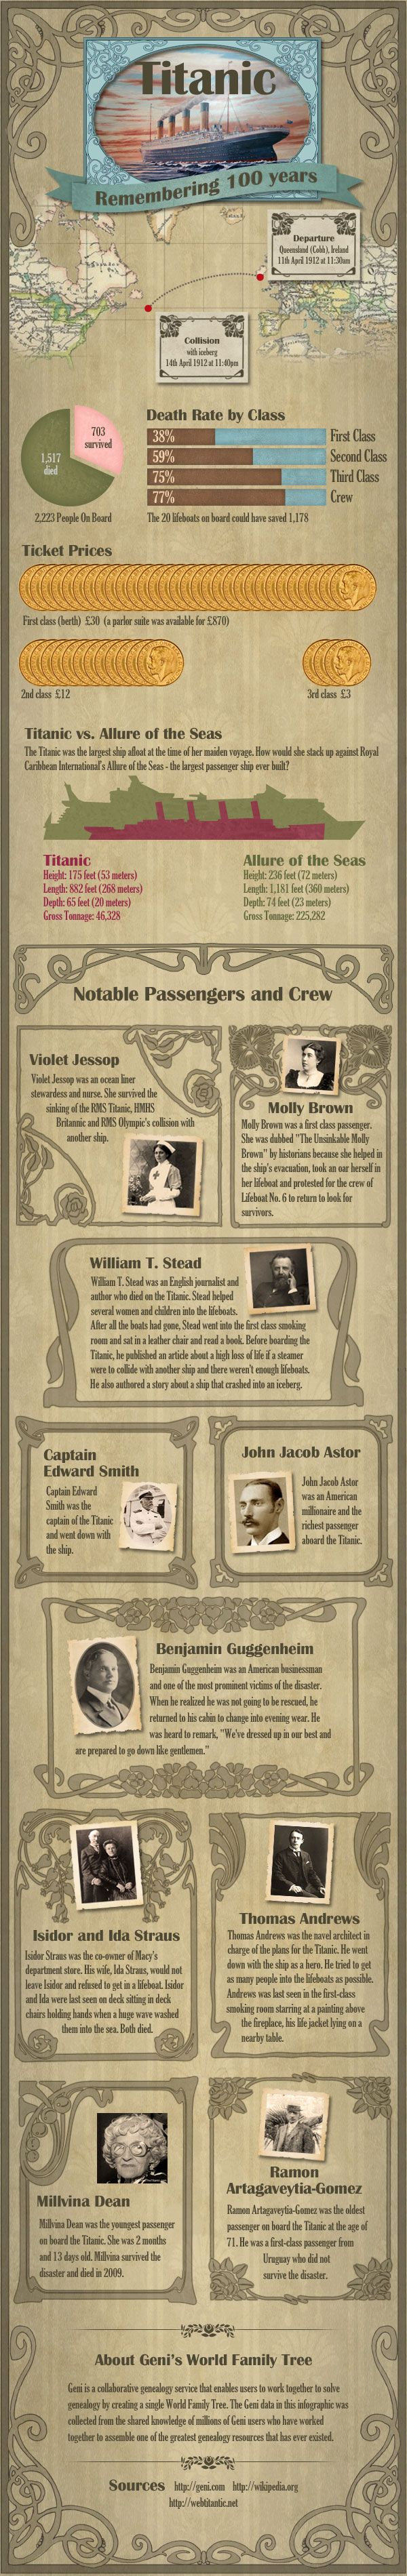 Titanic: Remembering 100 Years - an Infographic from Geni.com